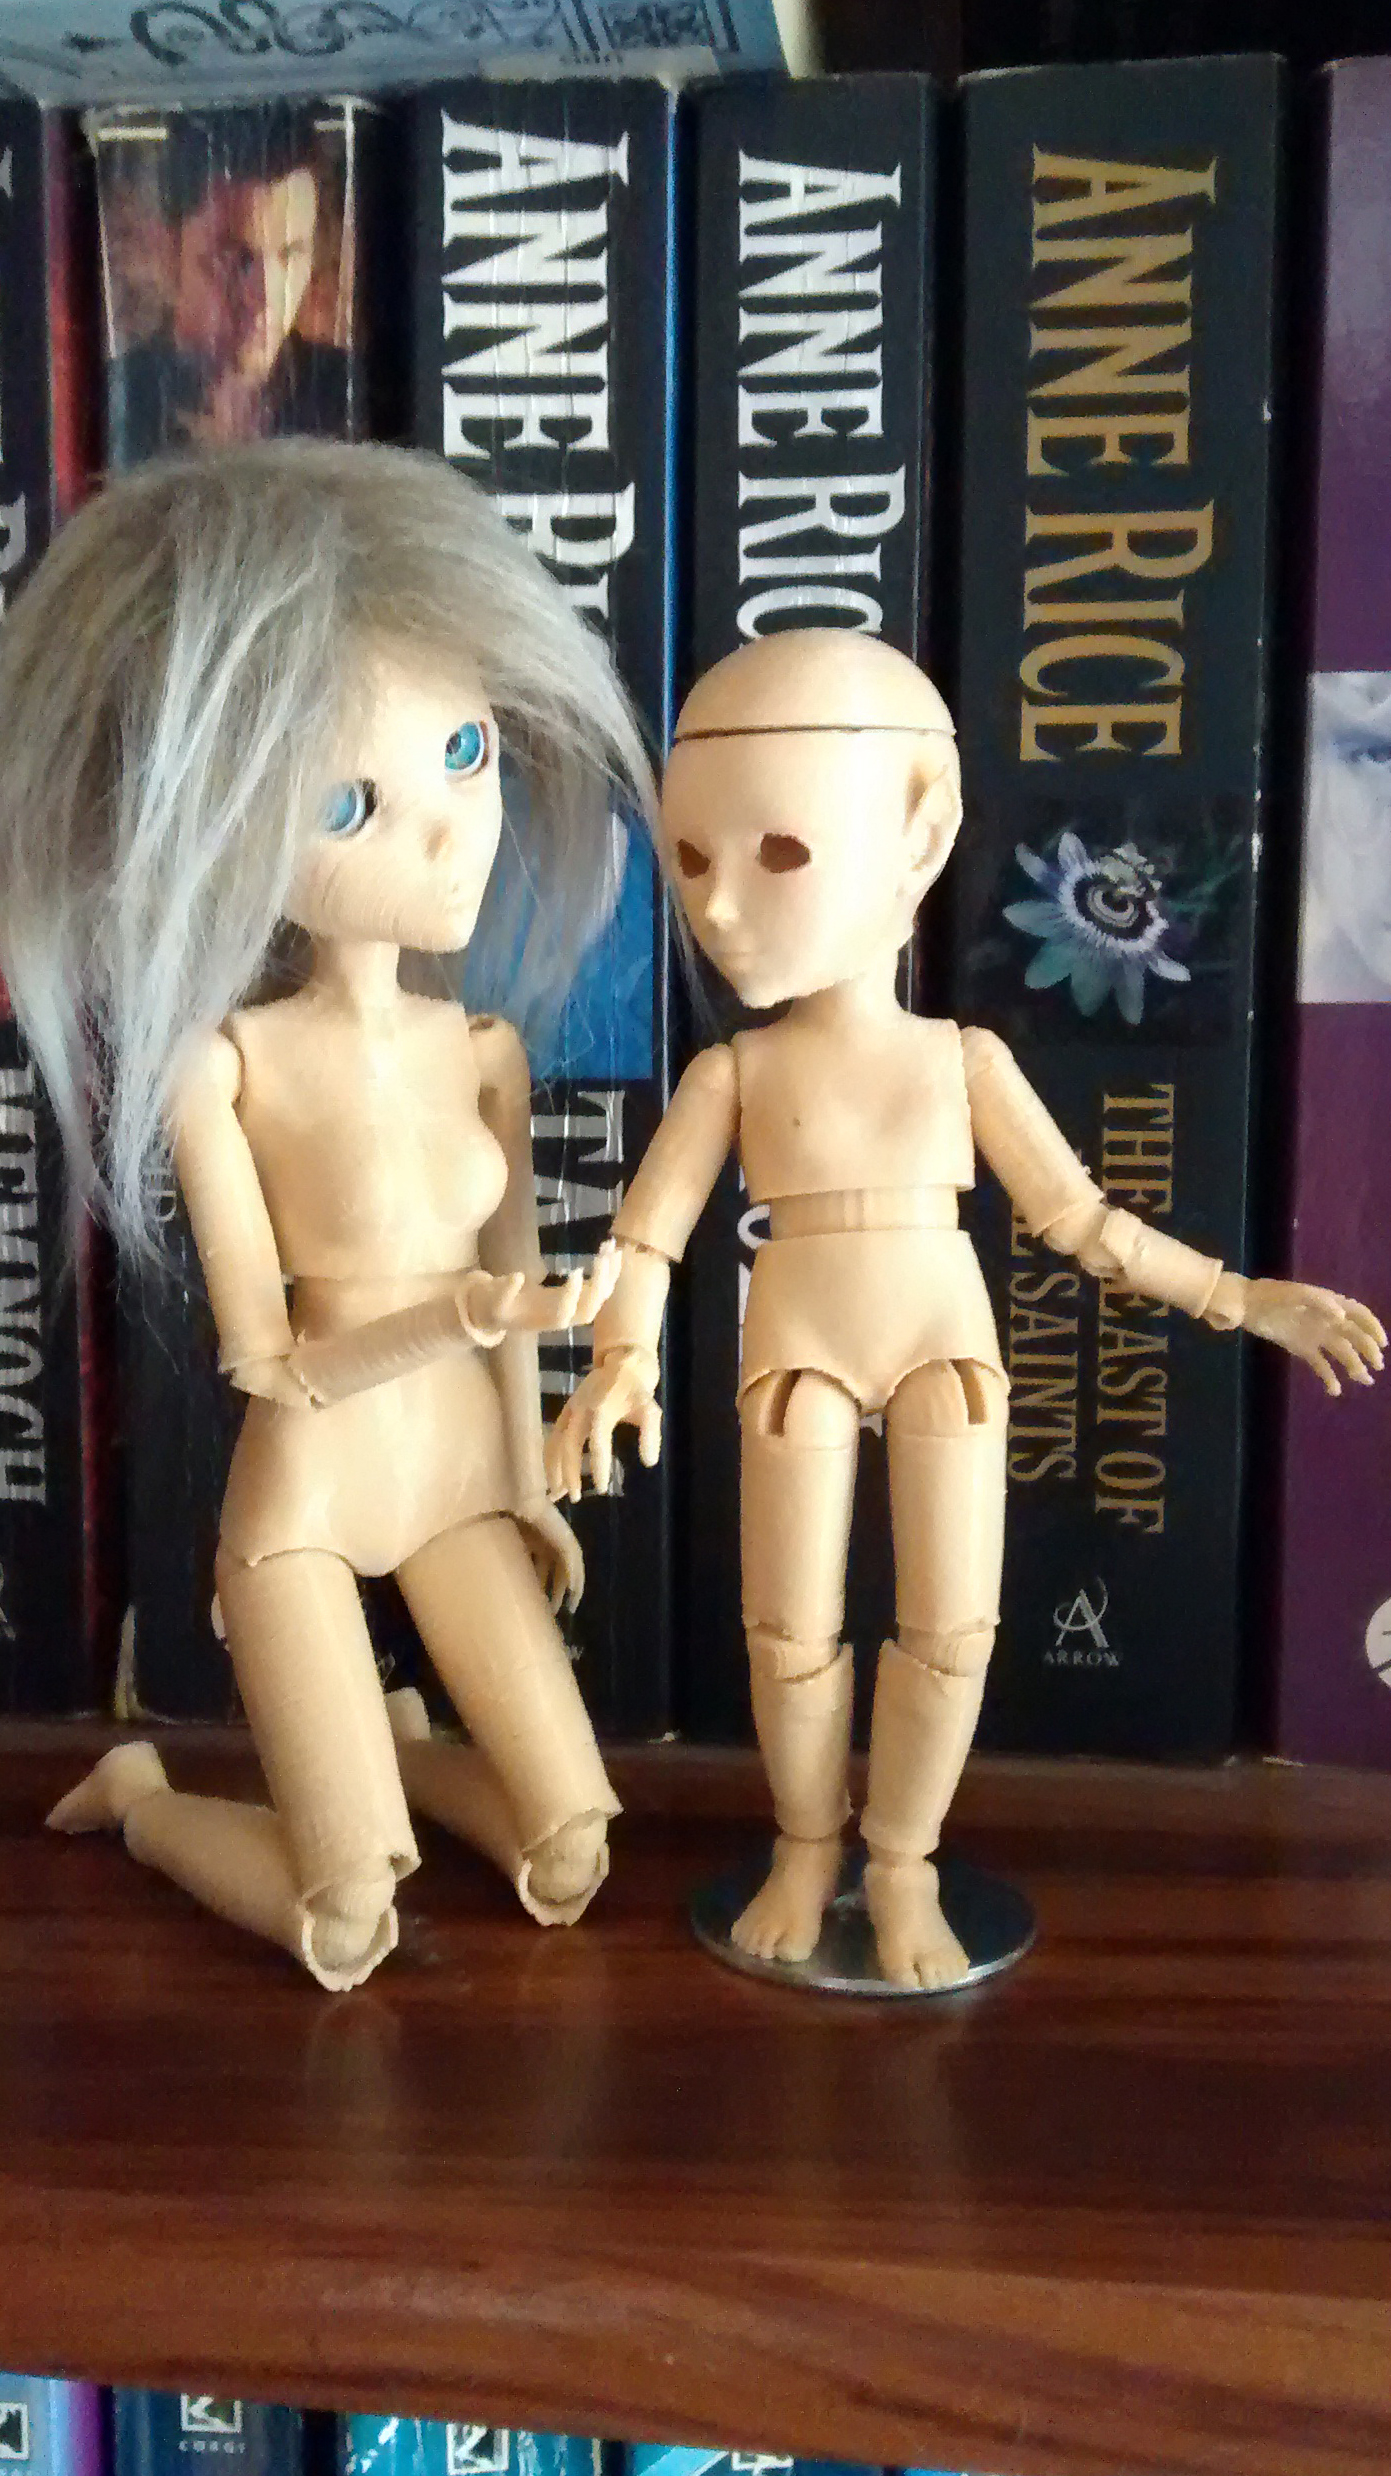 3D printed BJD by Dollartbyjulie